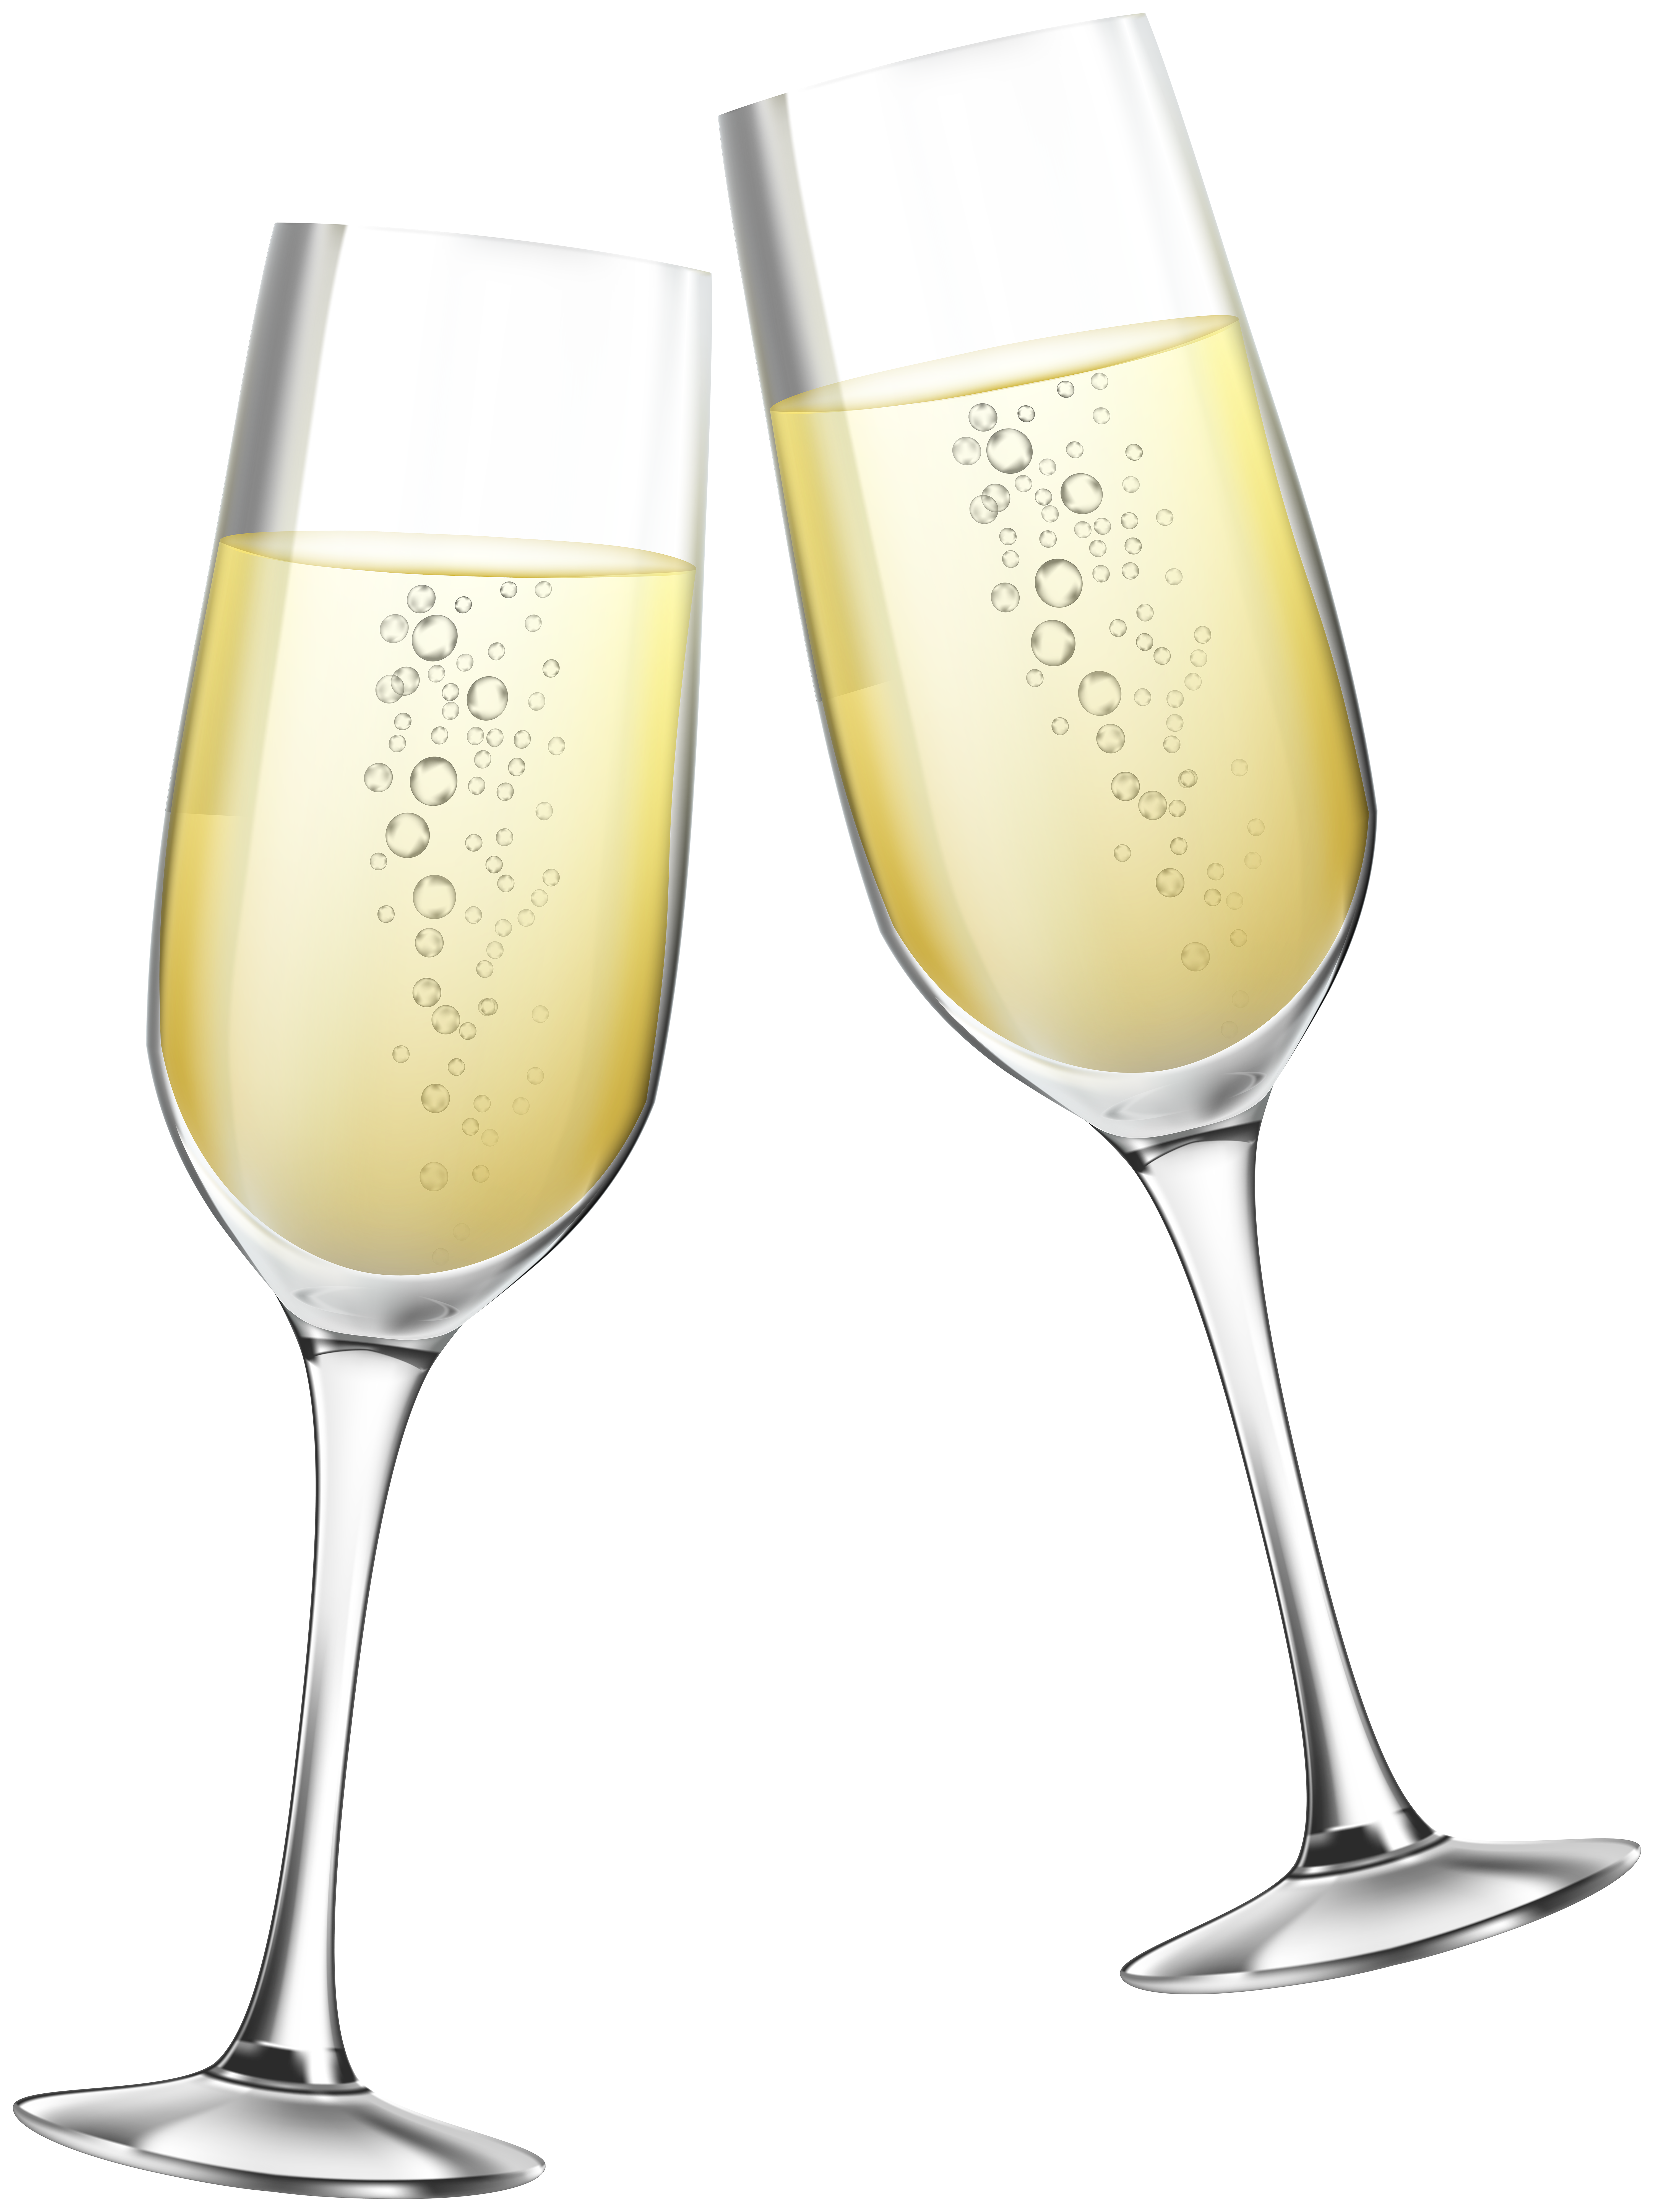 Toast with Glasses of Champagne Clipart.